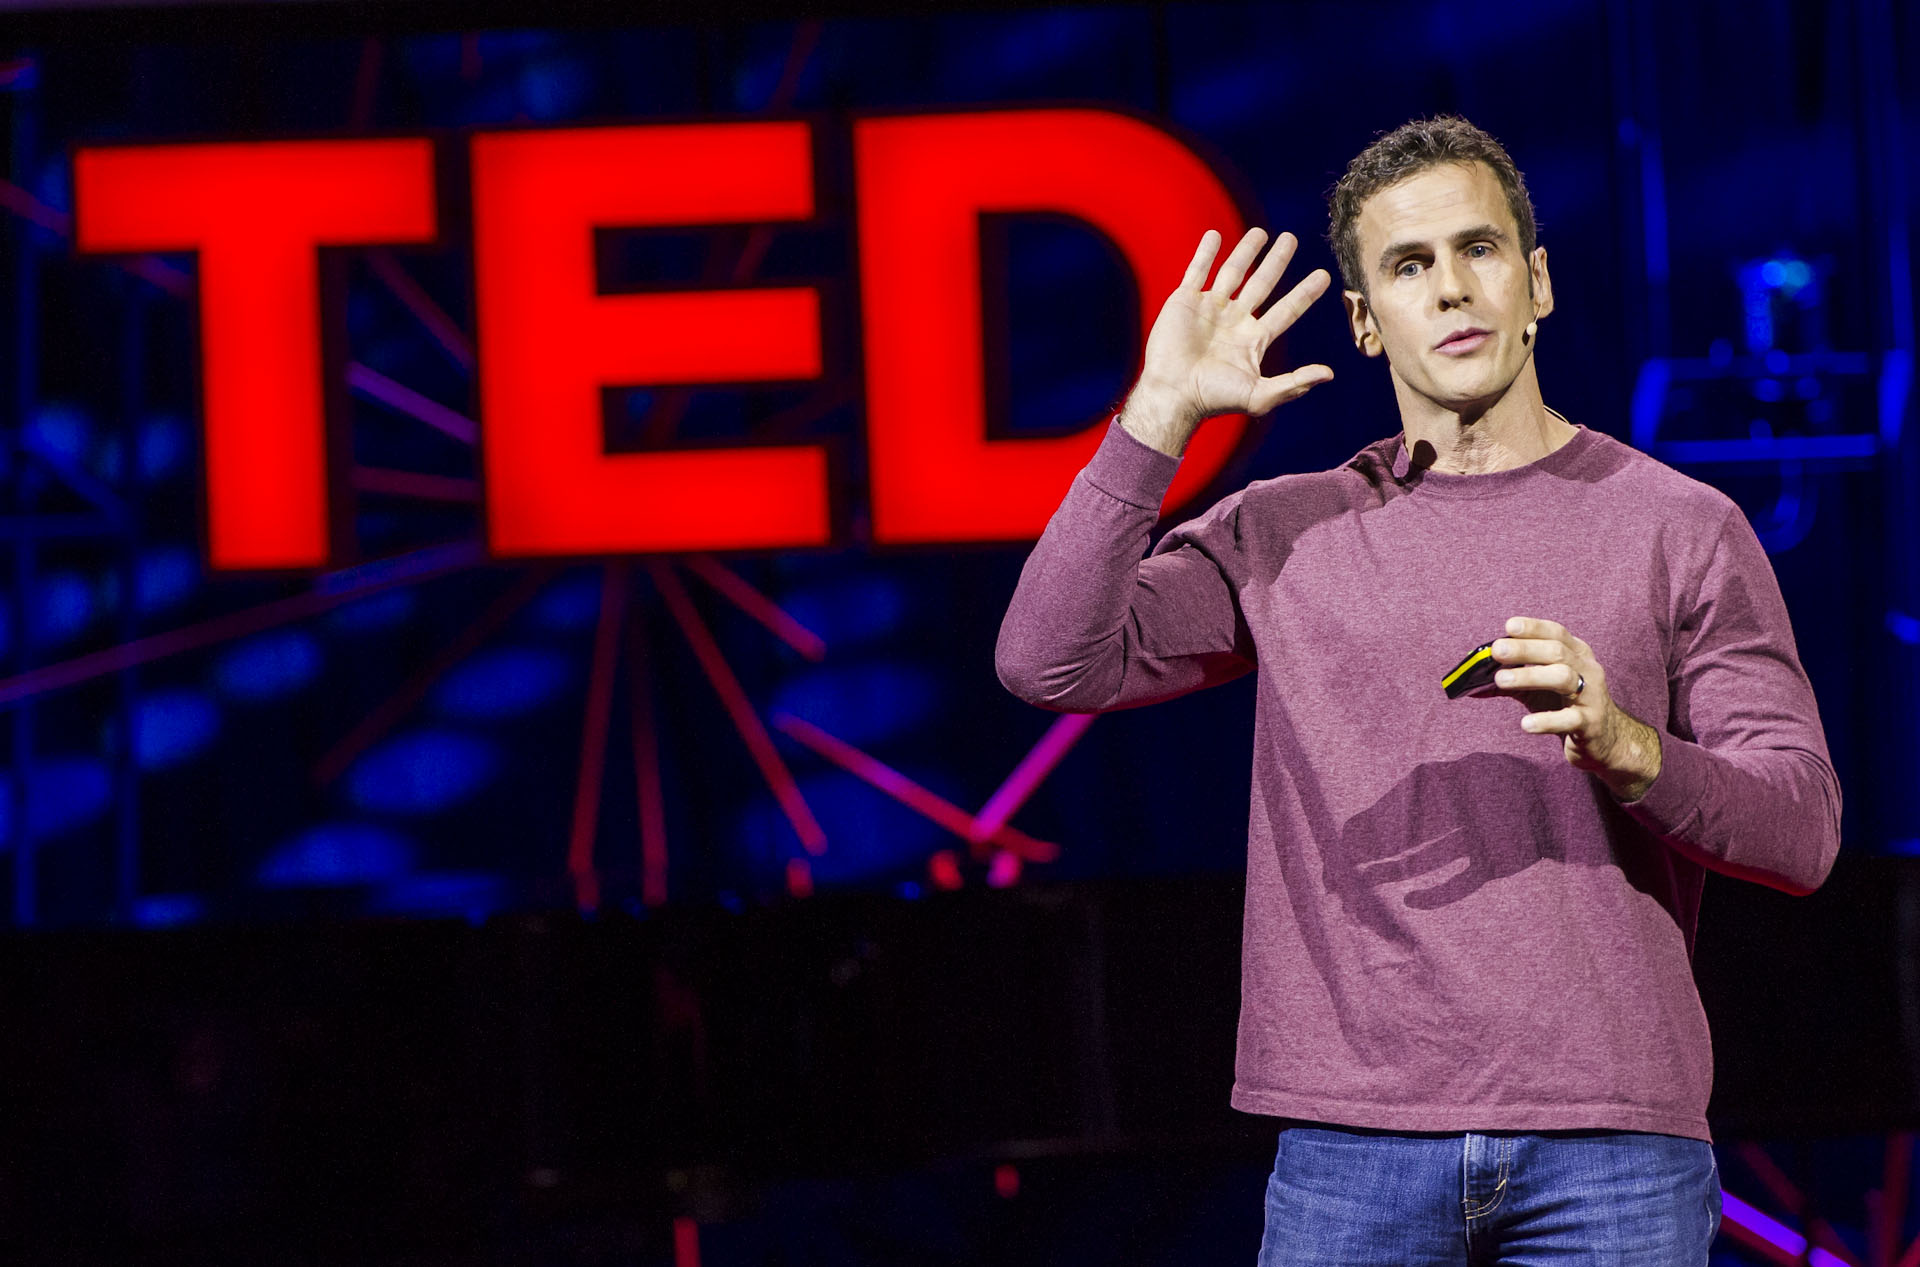 Read Montague speaks from the stage at TEDGlobal